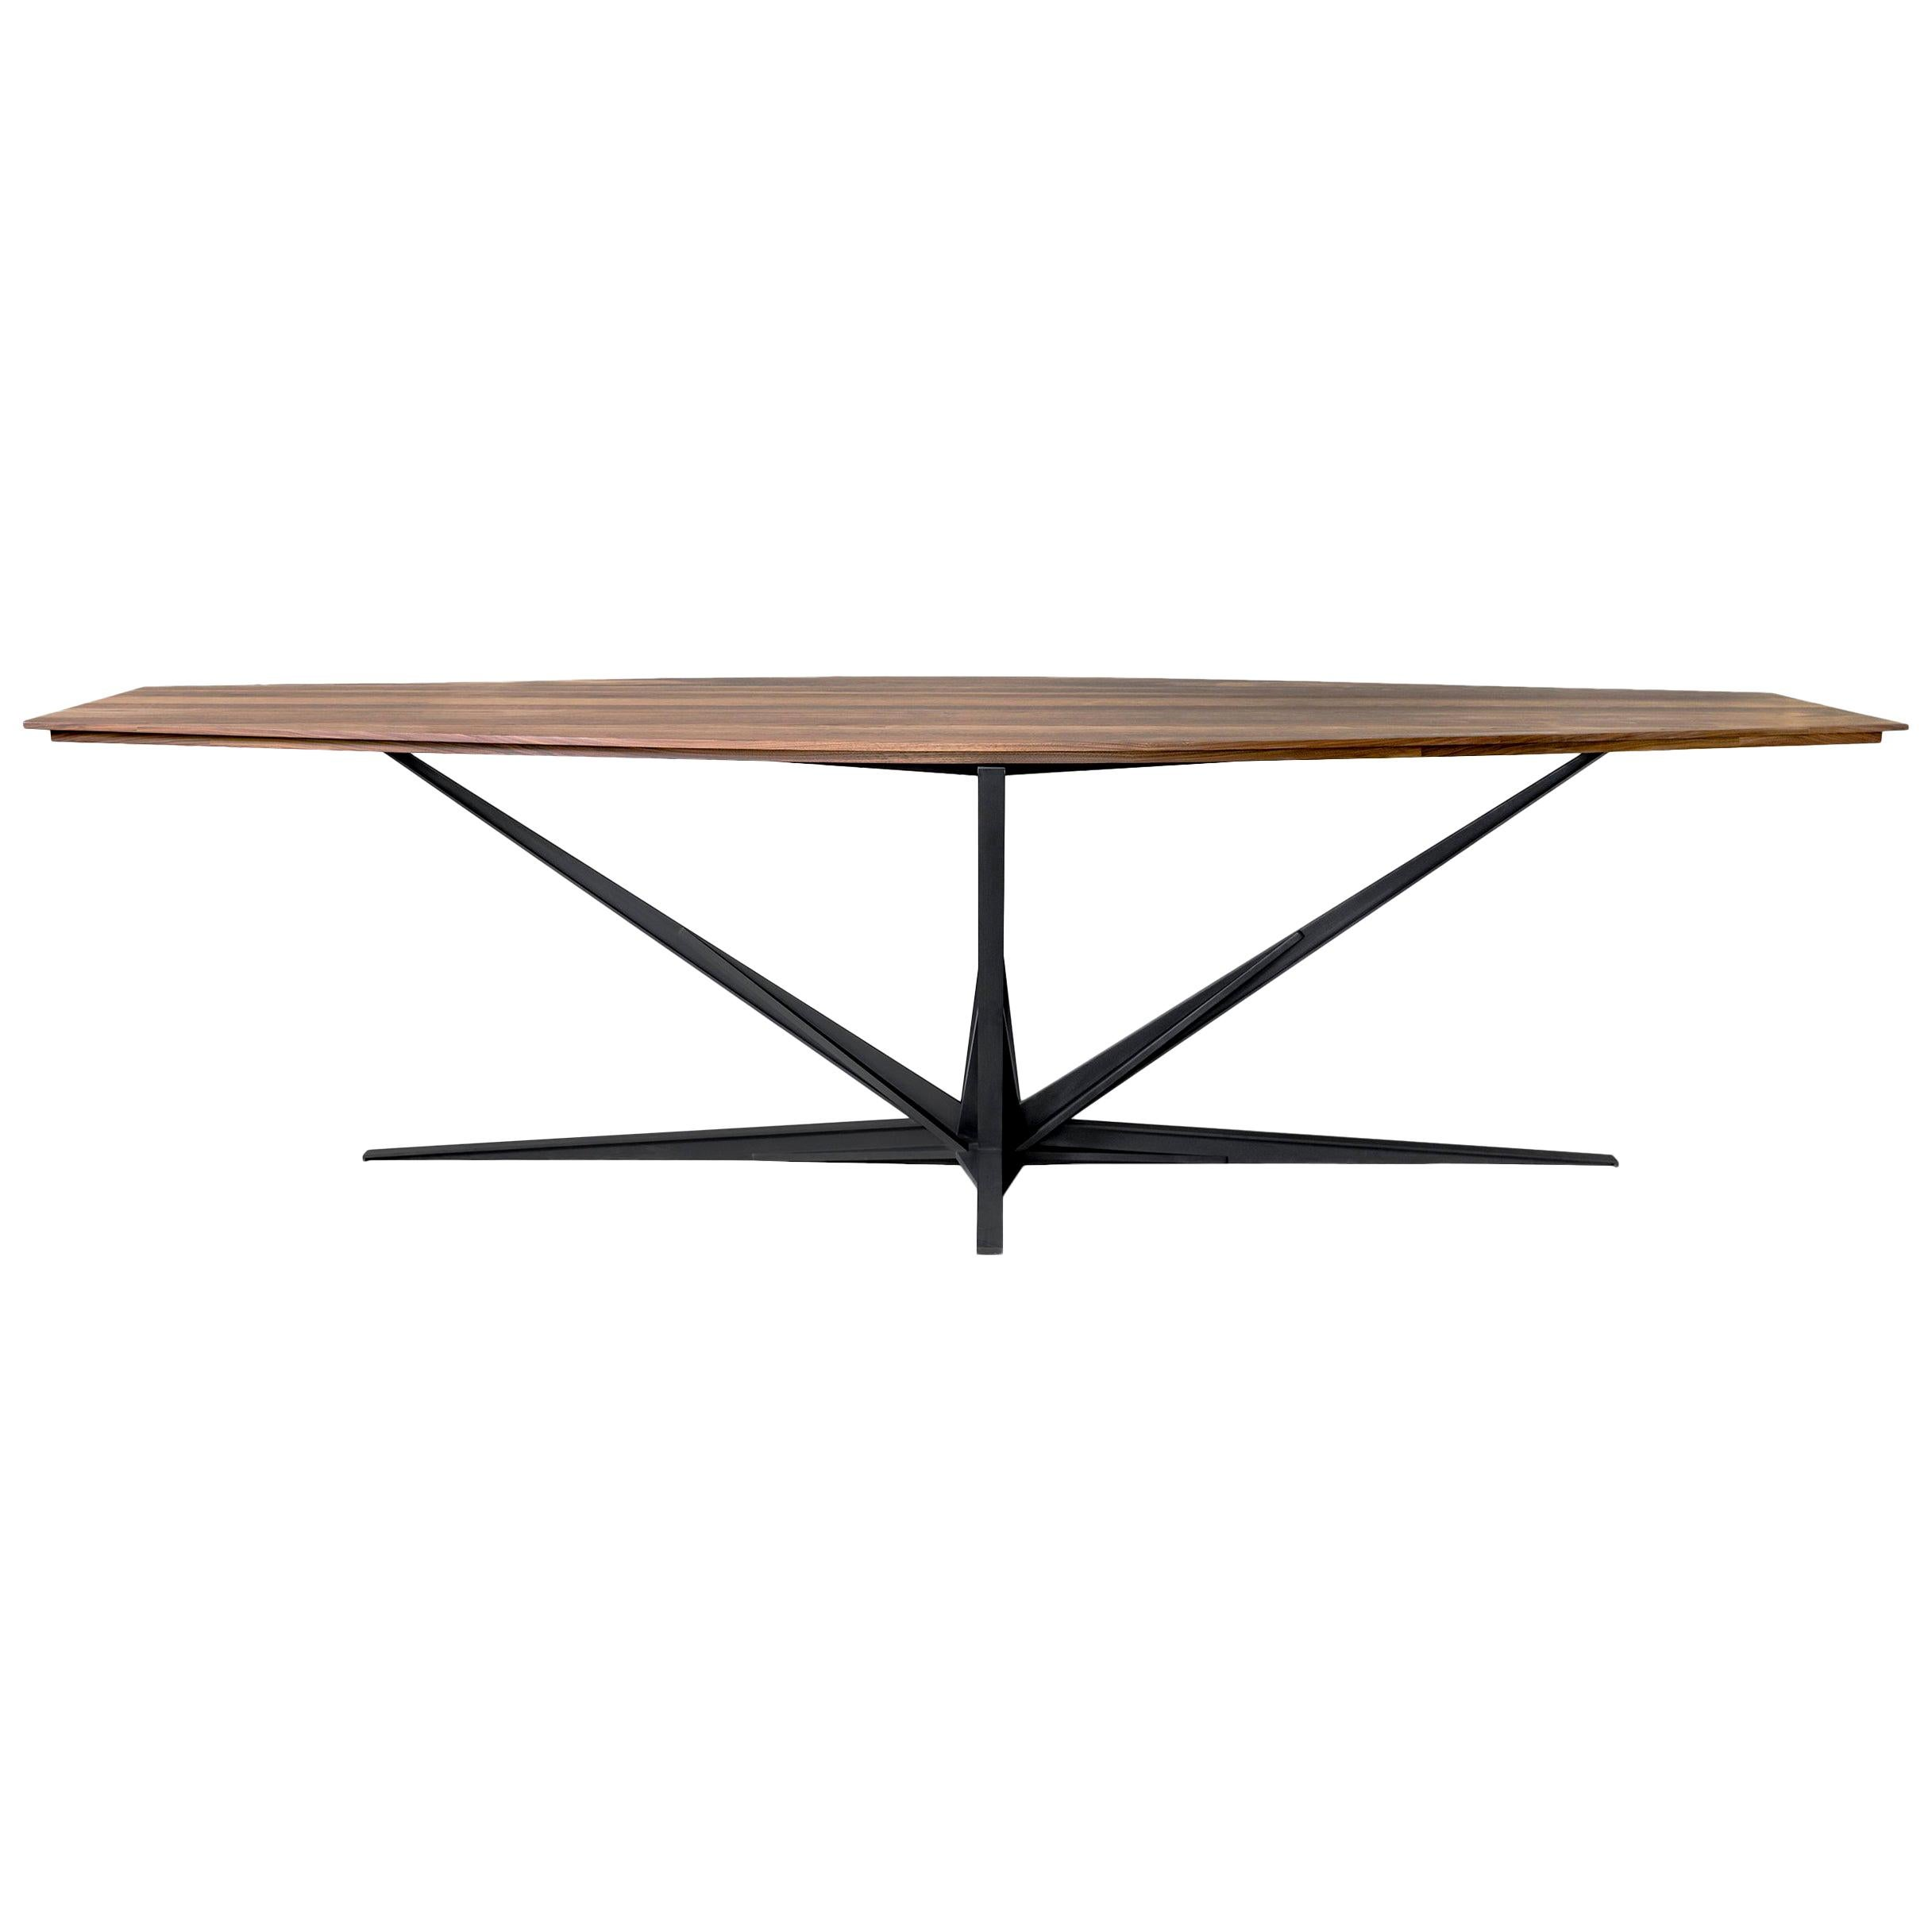 Agave Walnut Dining Table with Steel Atomic Base by ATRA